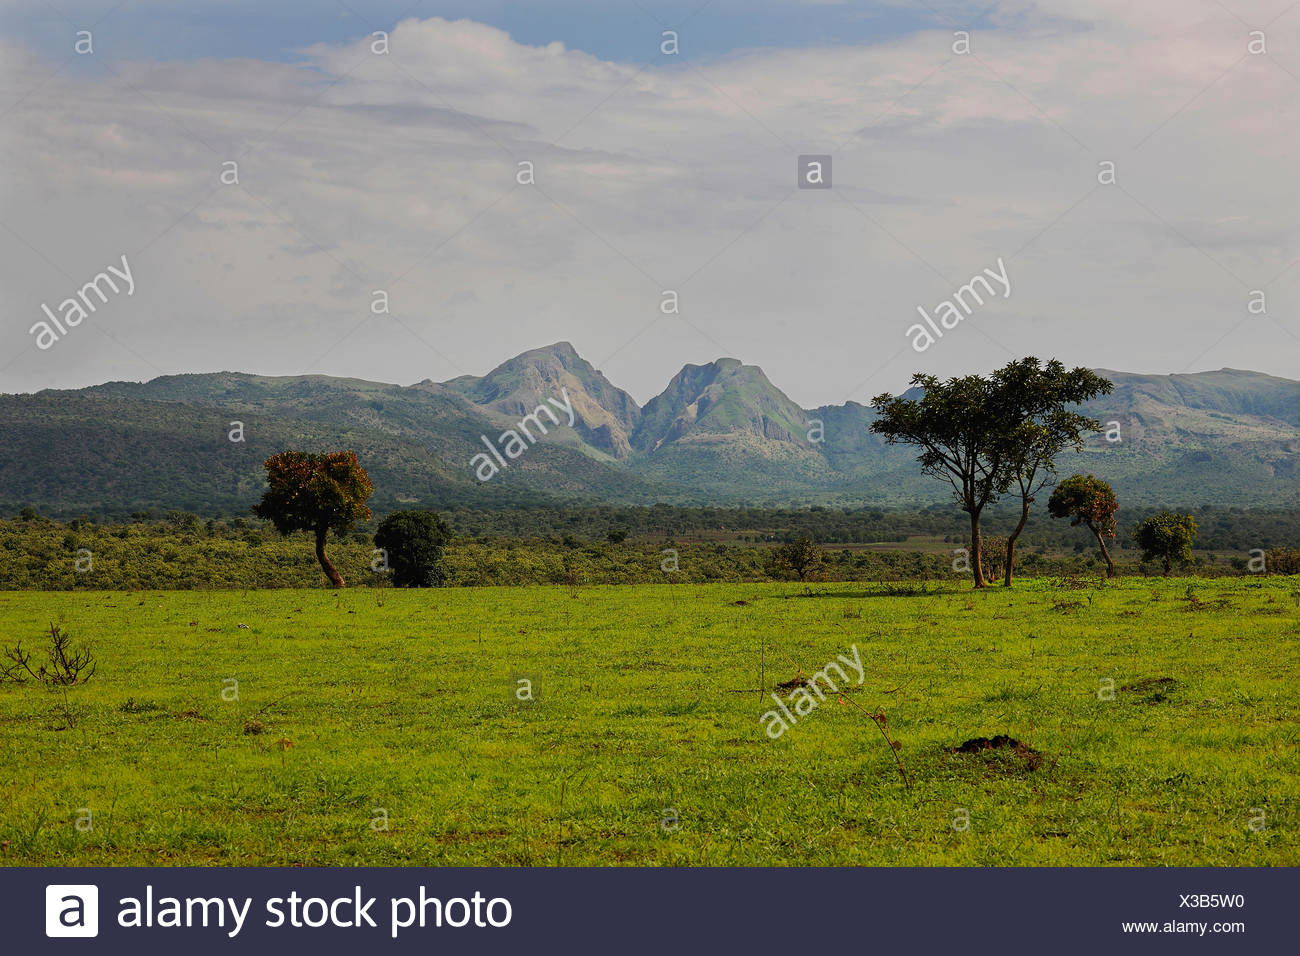 Landscape of Central Cameroon, Adamawa Region, Cameroon - Stock Image